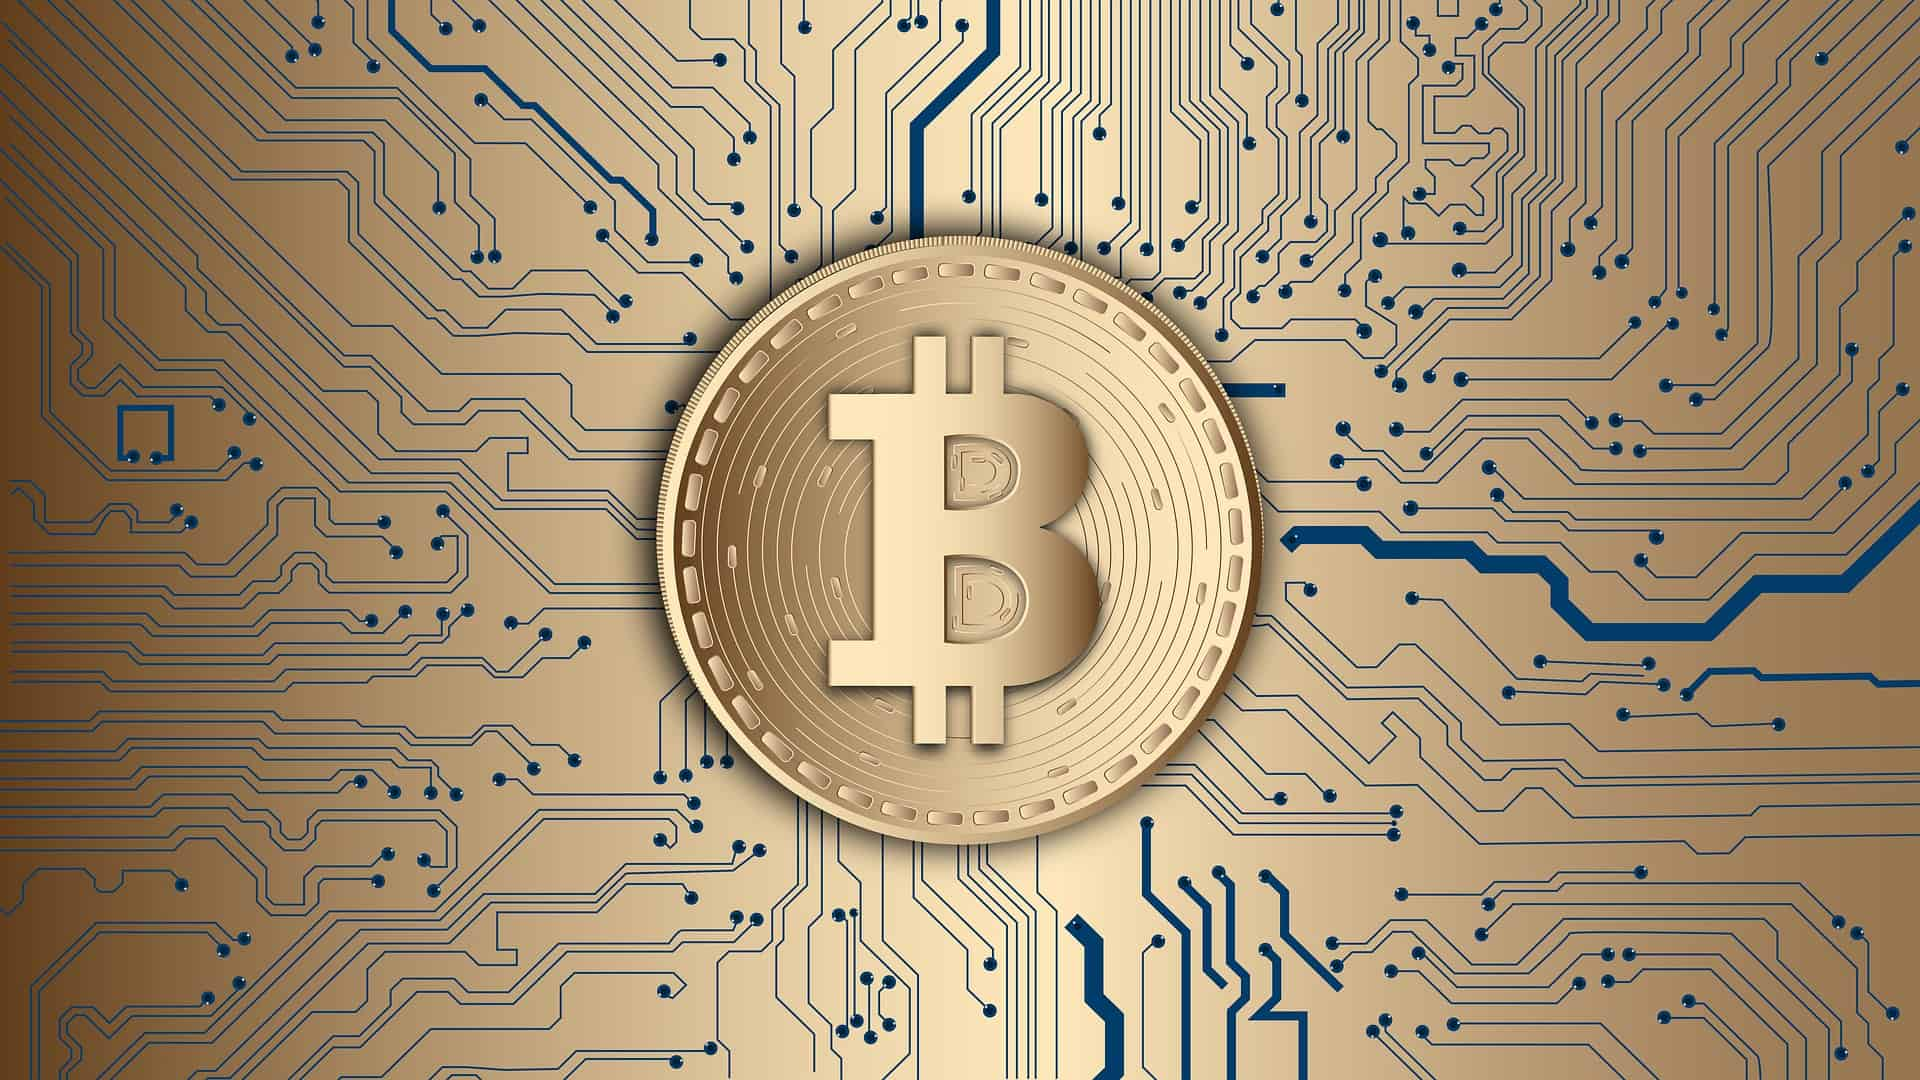 Should I invest in Bitcoin?